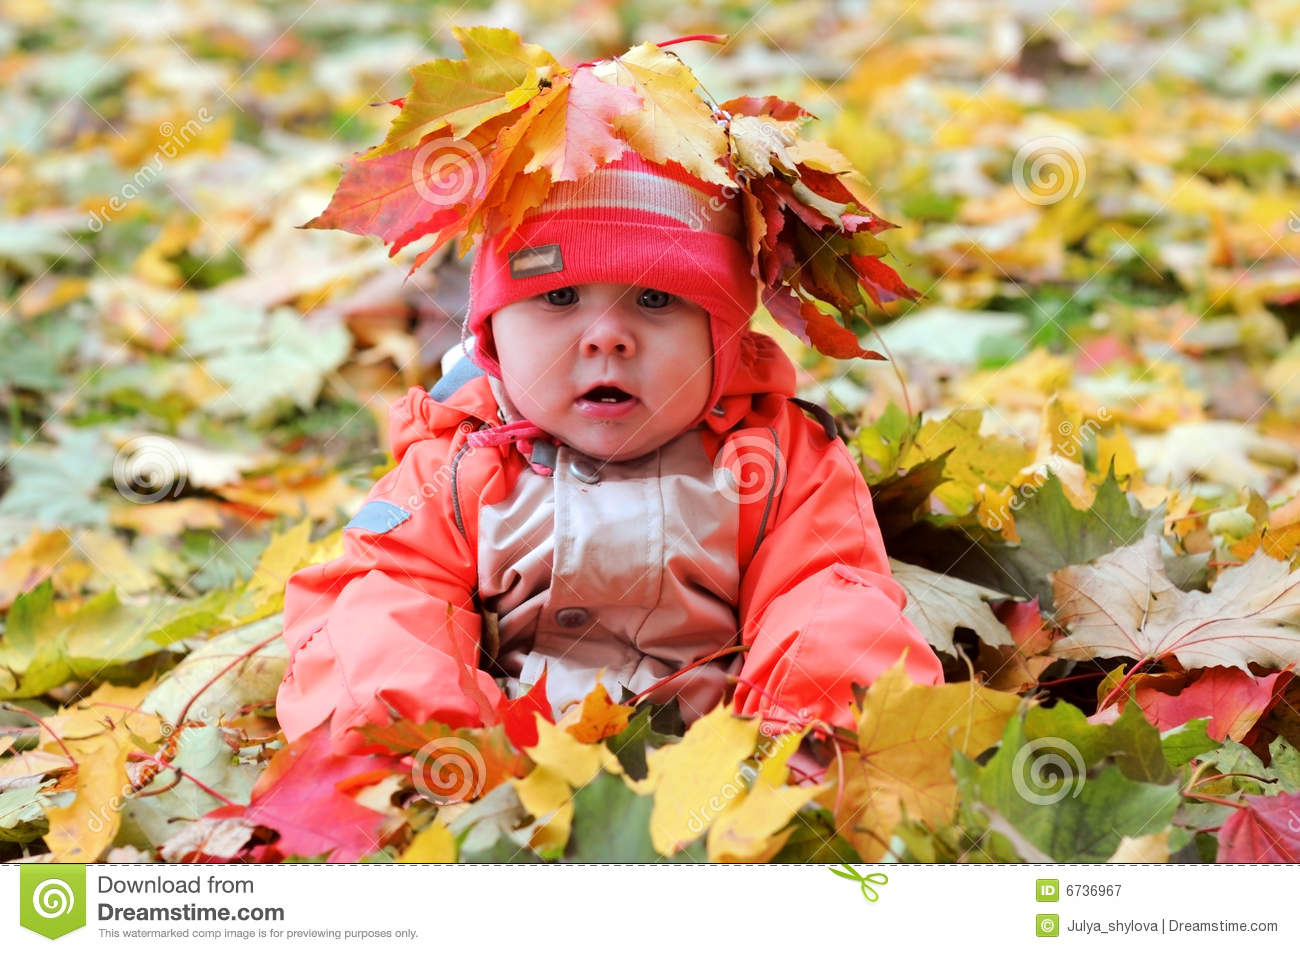 Maple Leaf Wallpaper For Fall Season Autumn Baby Stock Image Image Of Months Season Blue